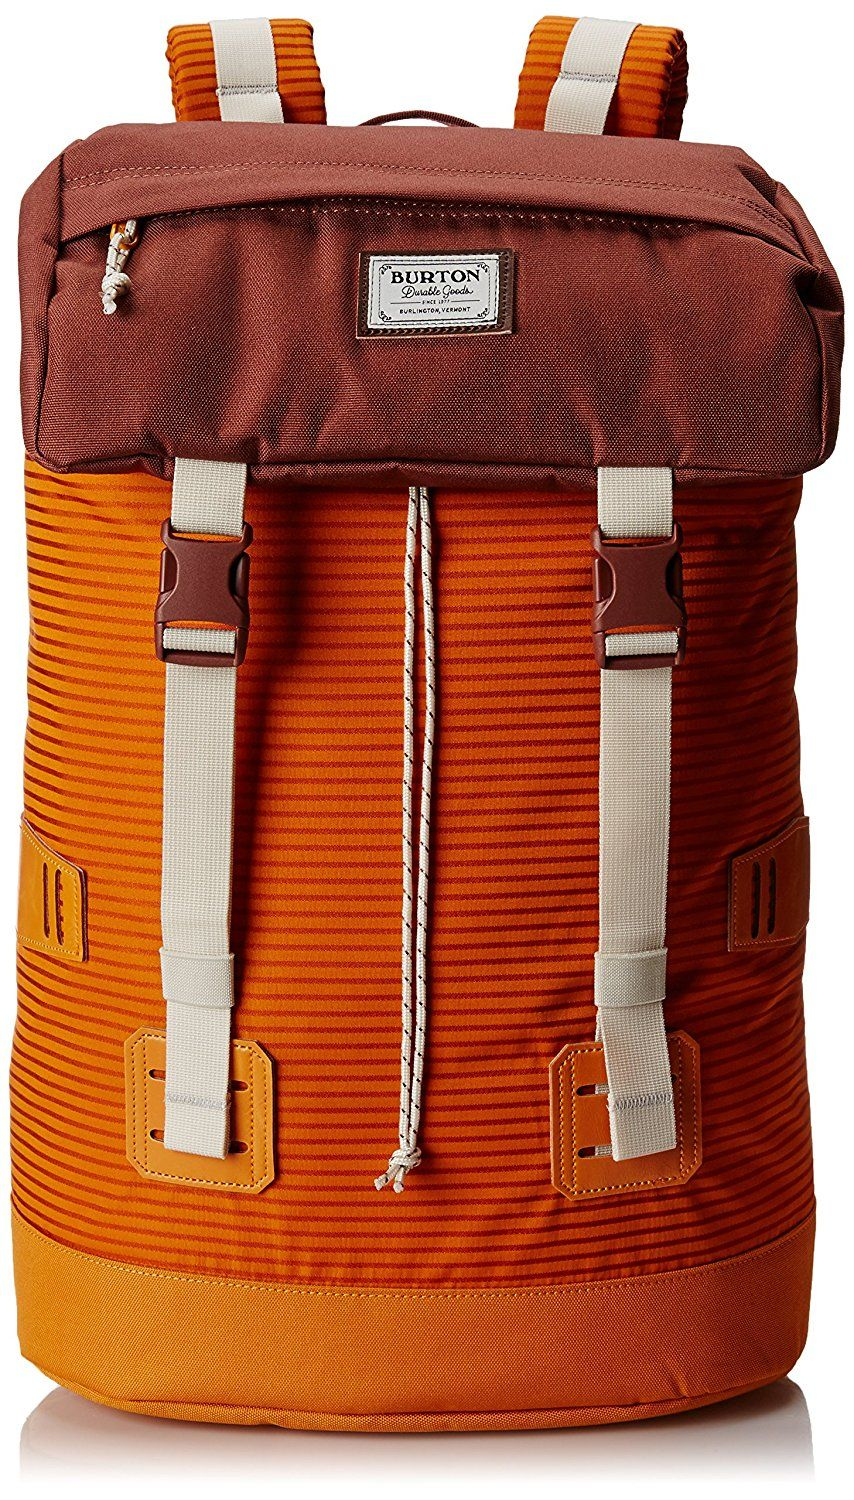 BURTON Tinder Pack => Wow! I love this. Check it out now! : Backpacking backpack